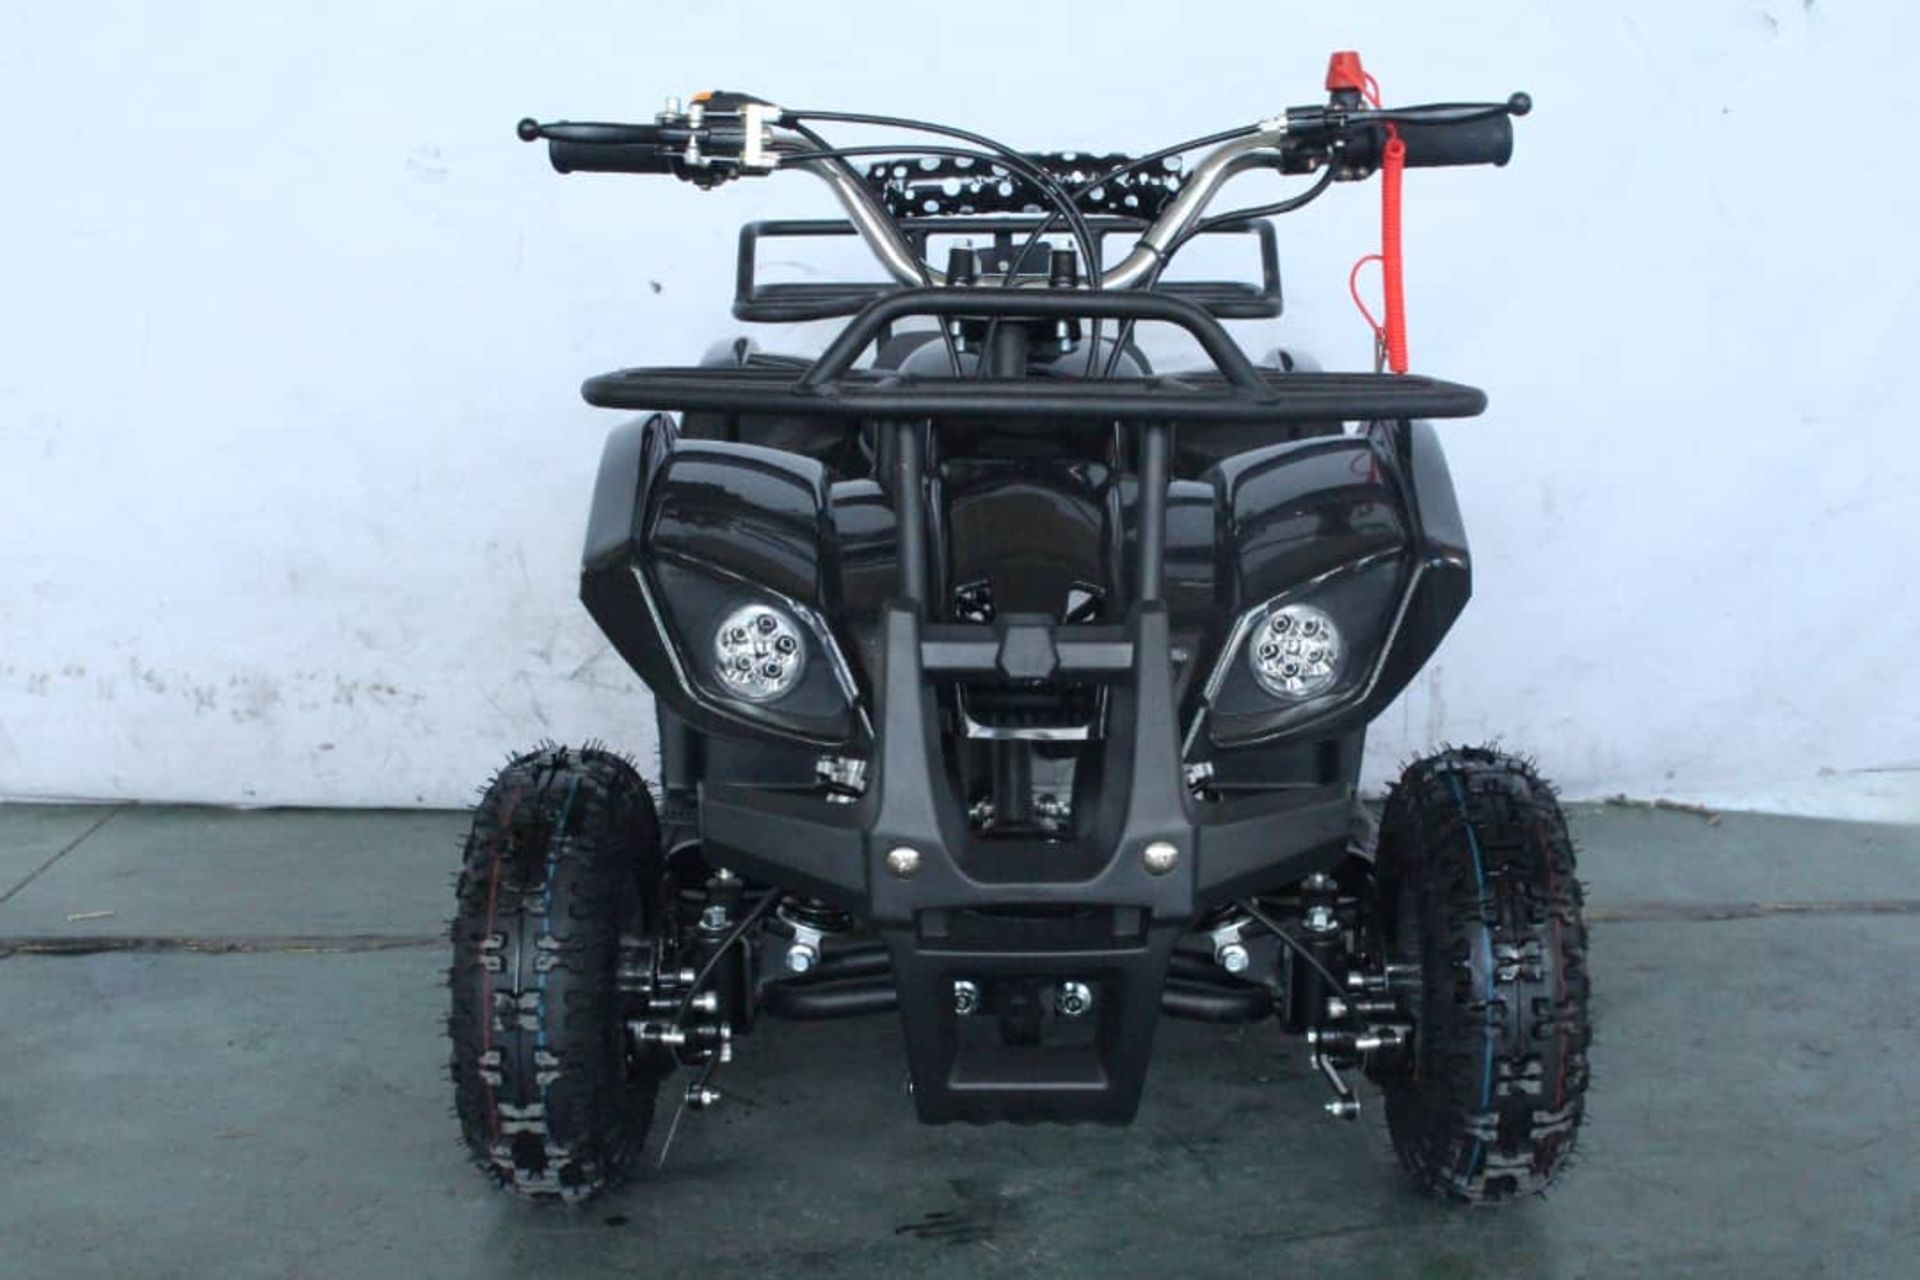 + VAT Brand New 49cc Hawk Mini Quad Bike - Colours May Vary - Full Front And Rear Suspension - Disk - Image 3 of 9